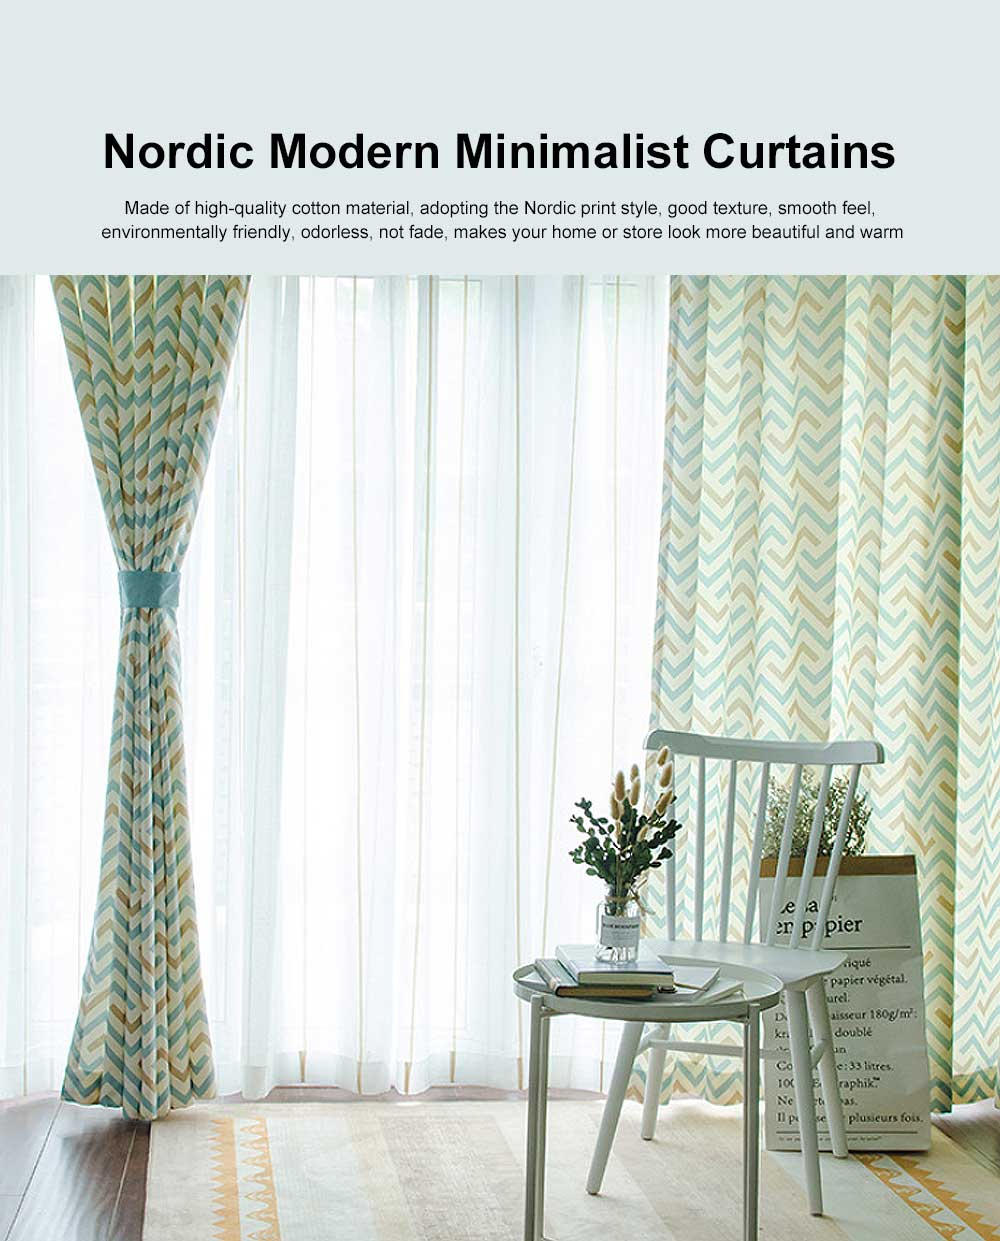 Nordic Modern Minimalist Curtains, Blackout Curtain for Living Room, Bedroom, High -quality Cotton Blackout Curtain 0